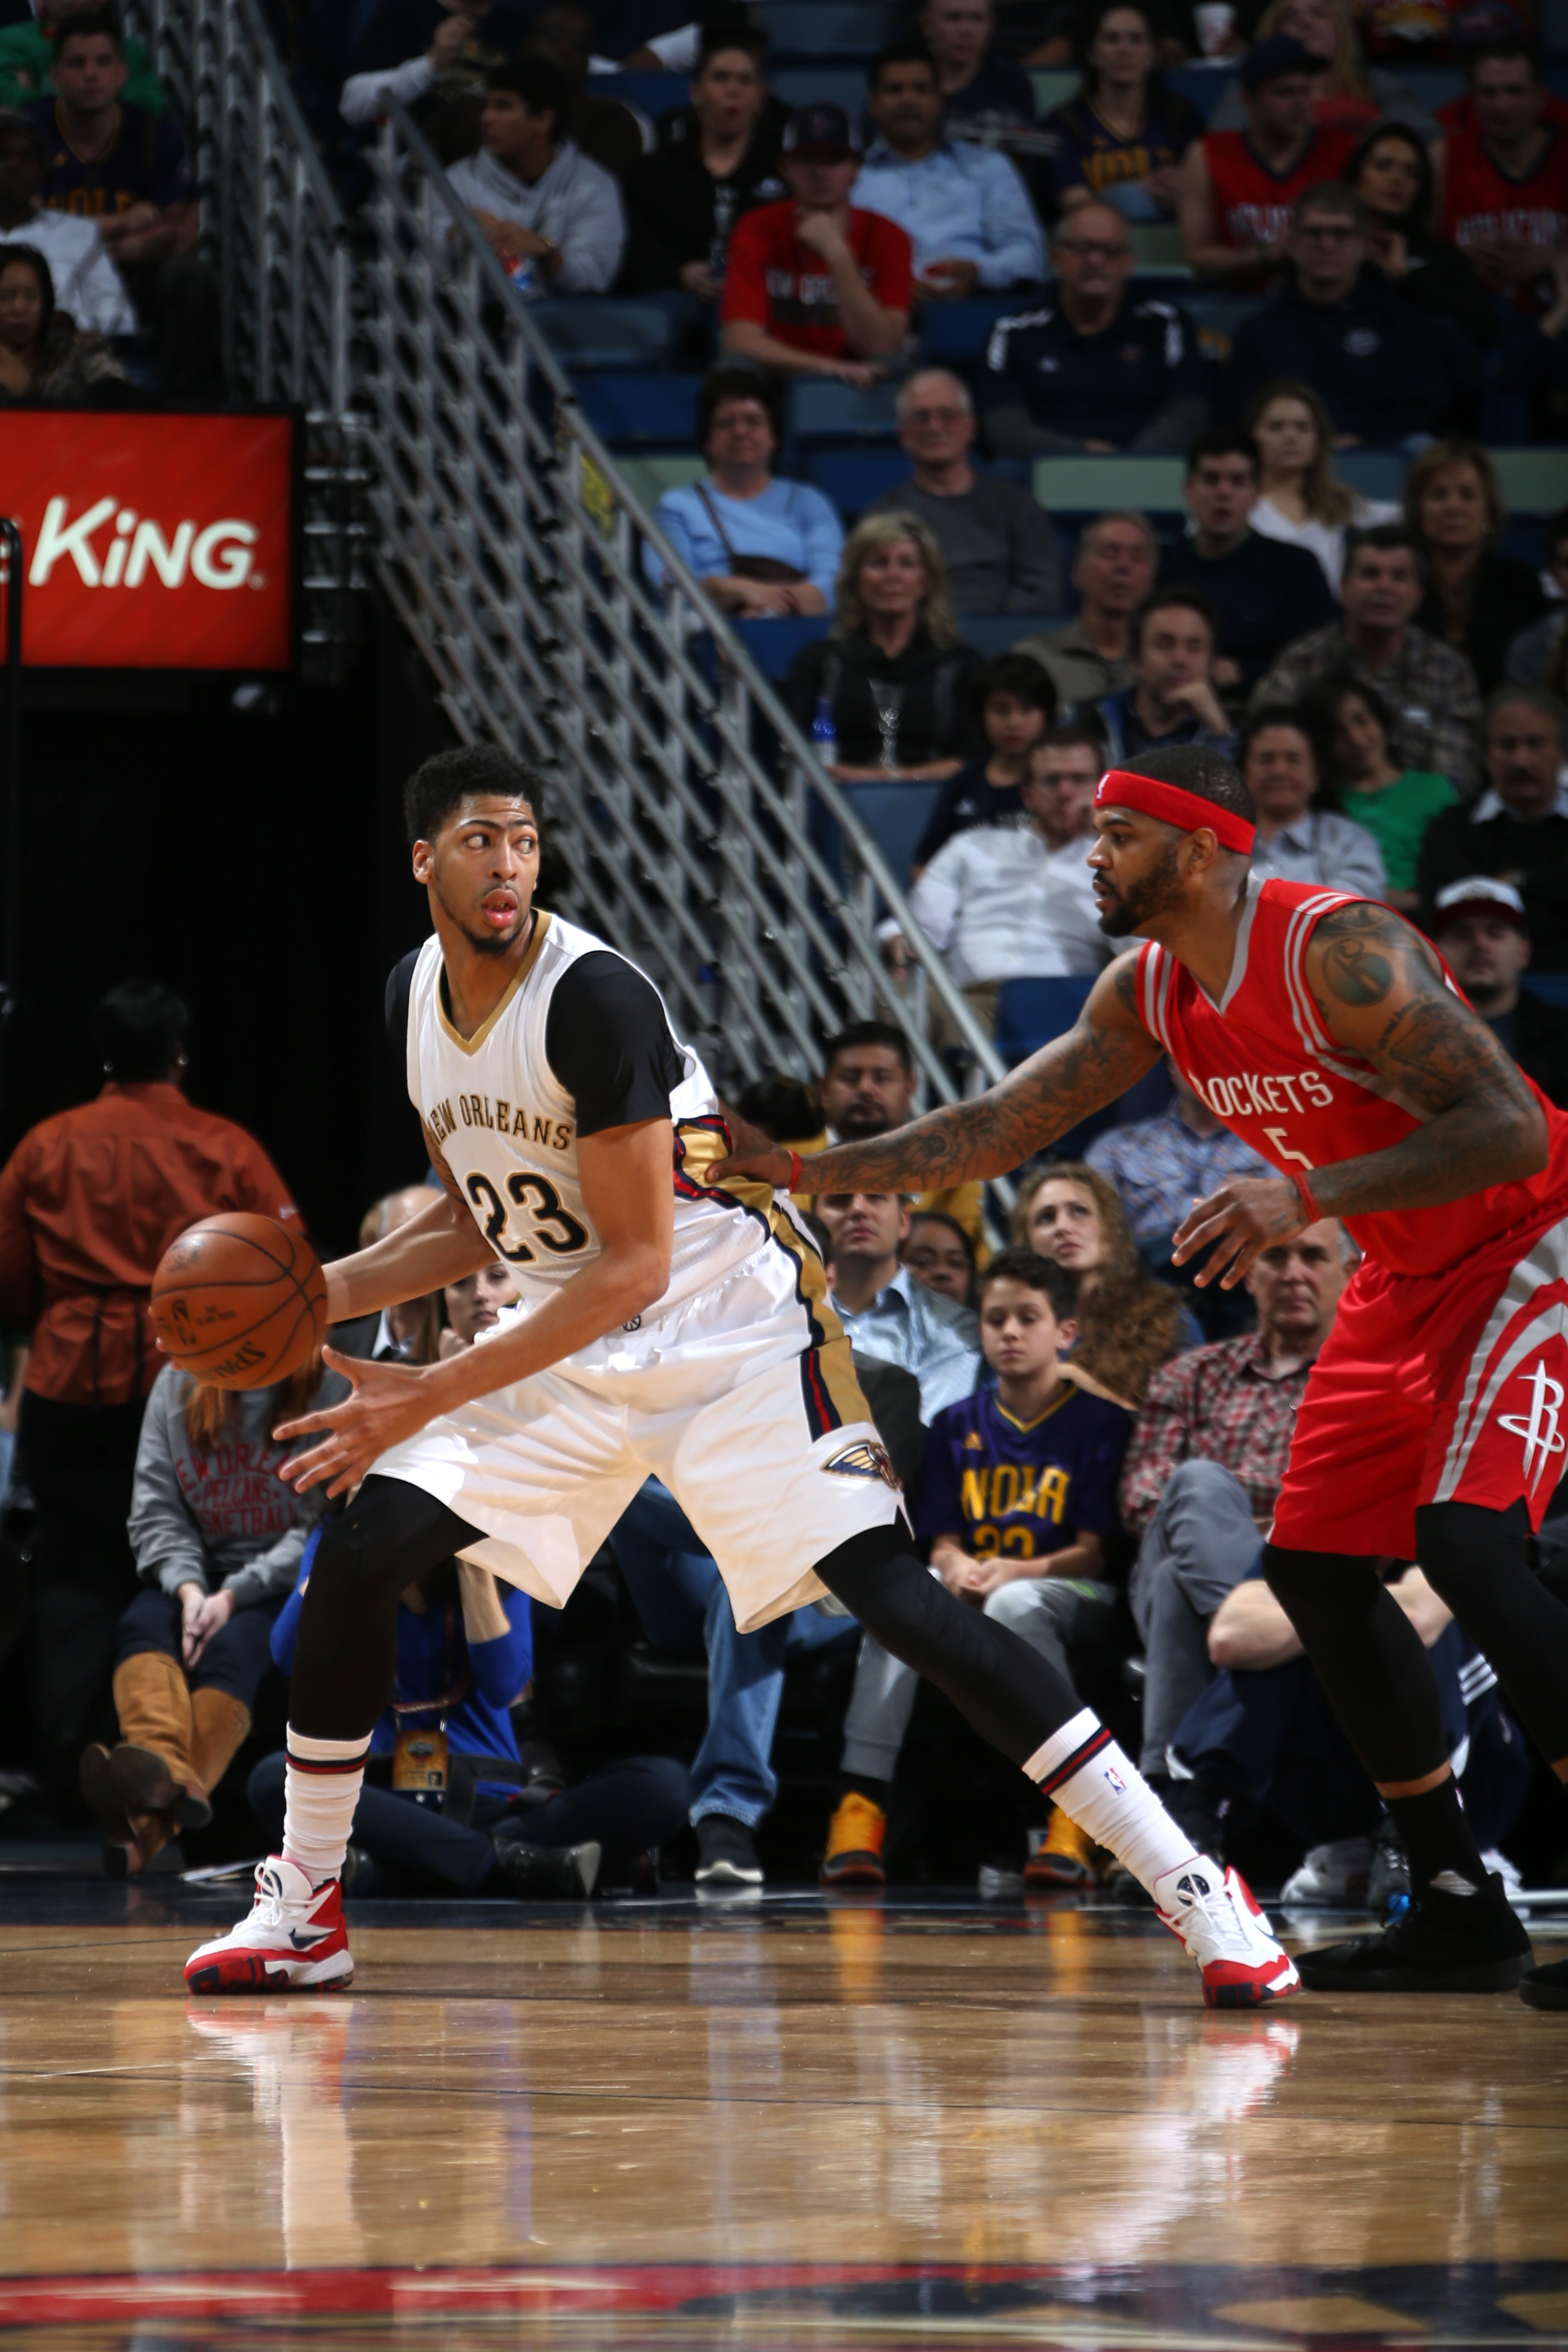 NEW ORLEANS, LA - JANUARY 25:  Anthony Davis #23 of the New Orleans Pelicans handles the ball against Josh Smith #5 of the Houston Rockets on January 25, 2016 at the Smoothie King Center in New Orleans, Louisiana. (Photo by Layne Murdoch Jr./NBAE via Gett